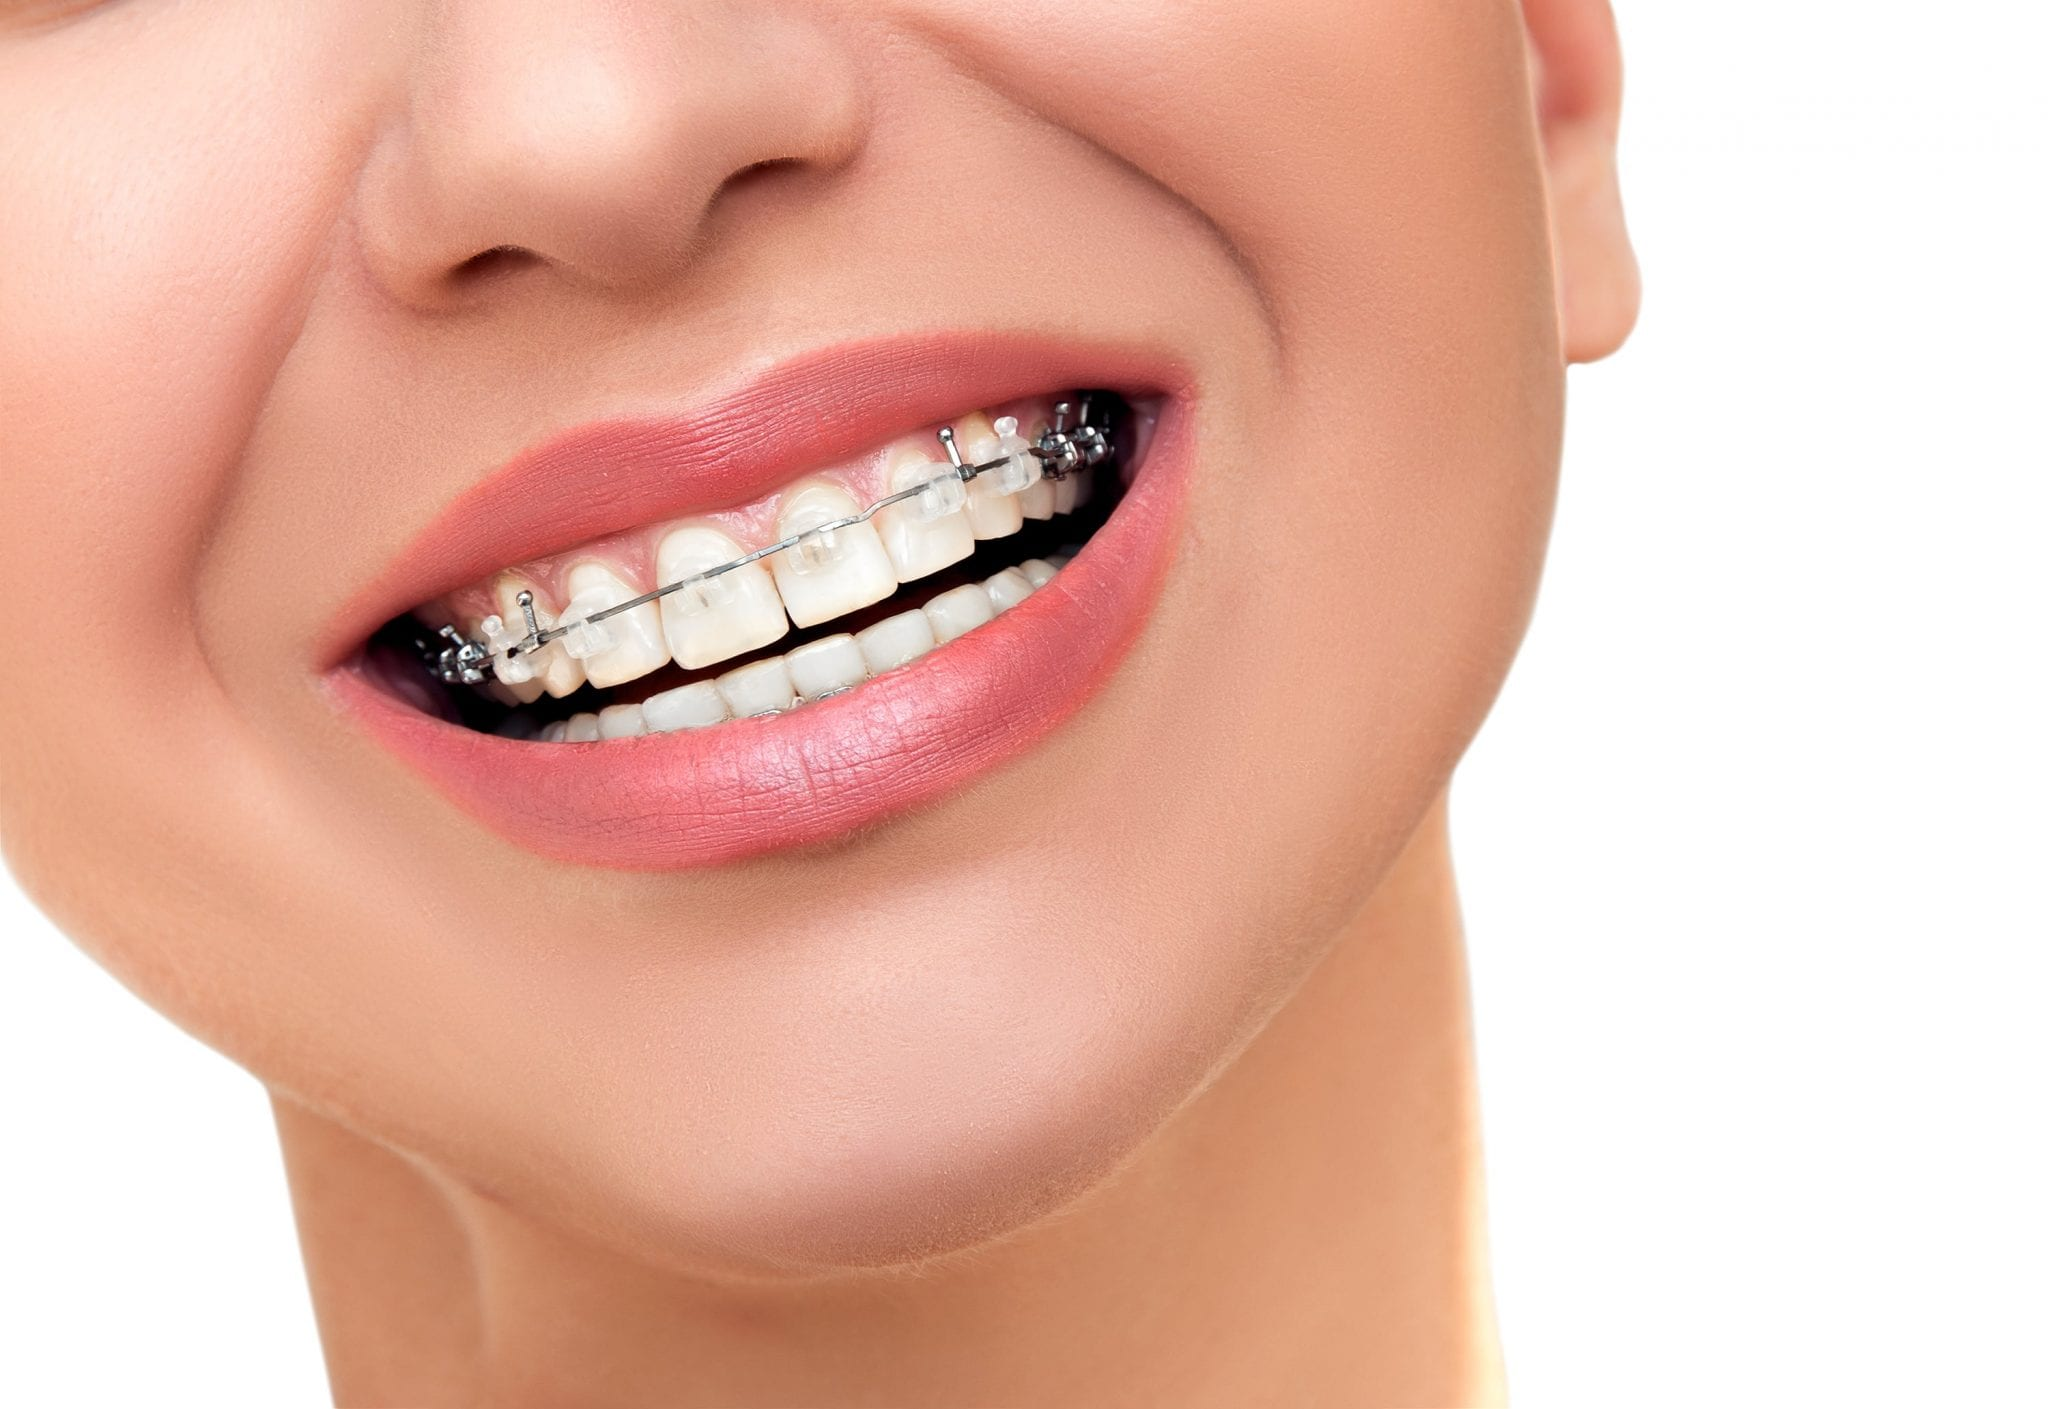 Closeup Beautiful Female Smile with Transparent Ceramic and Metal Braces on Teeth.